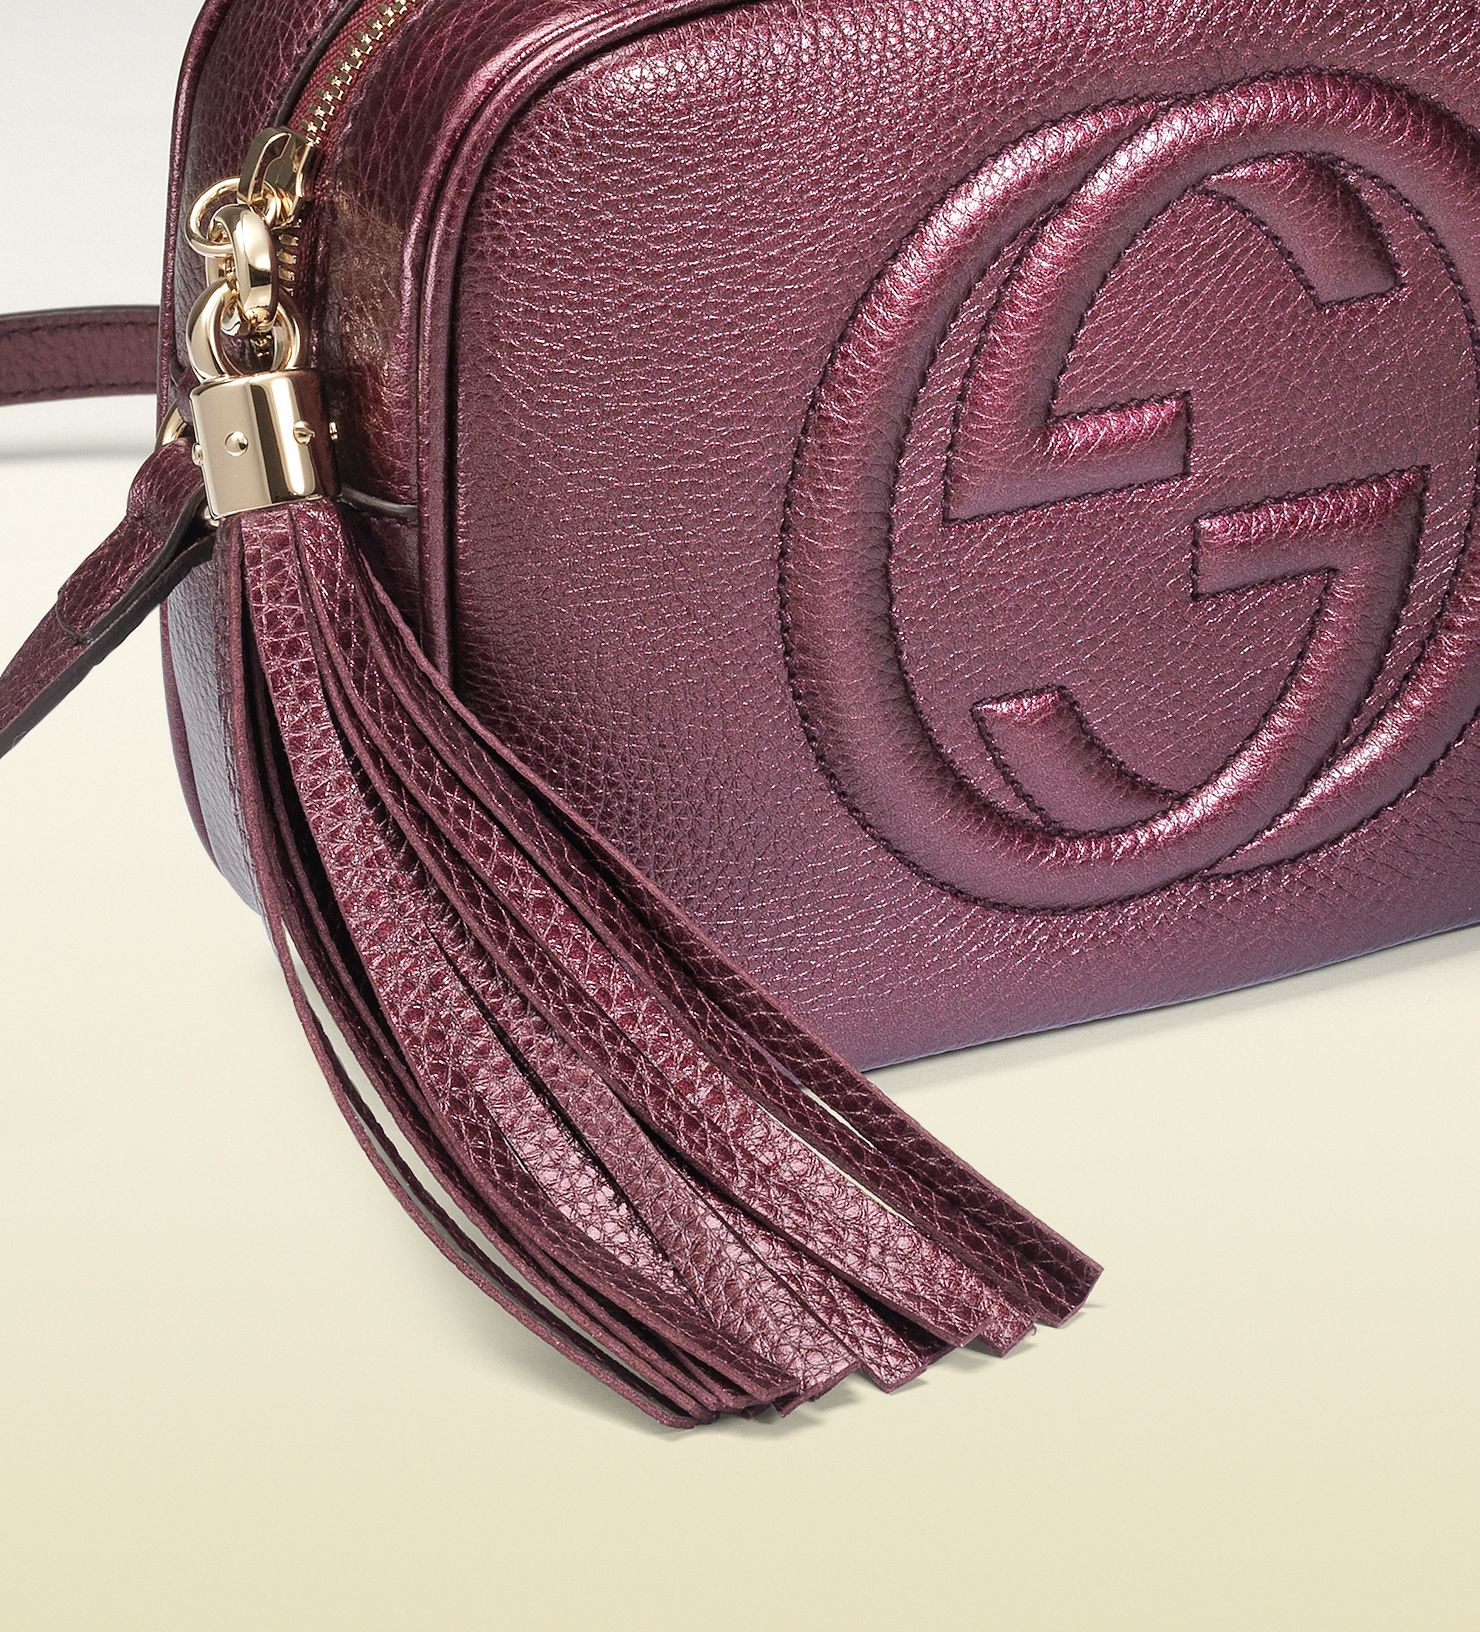 41b6c638427b GUCCI soho metallic leather disco bag in burgundy | My Style | Pinterest